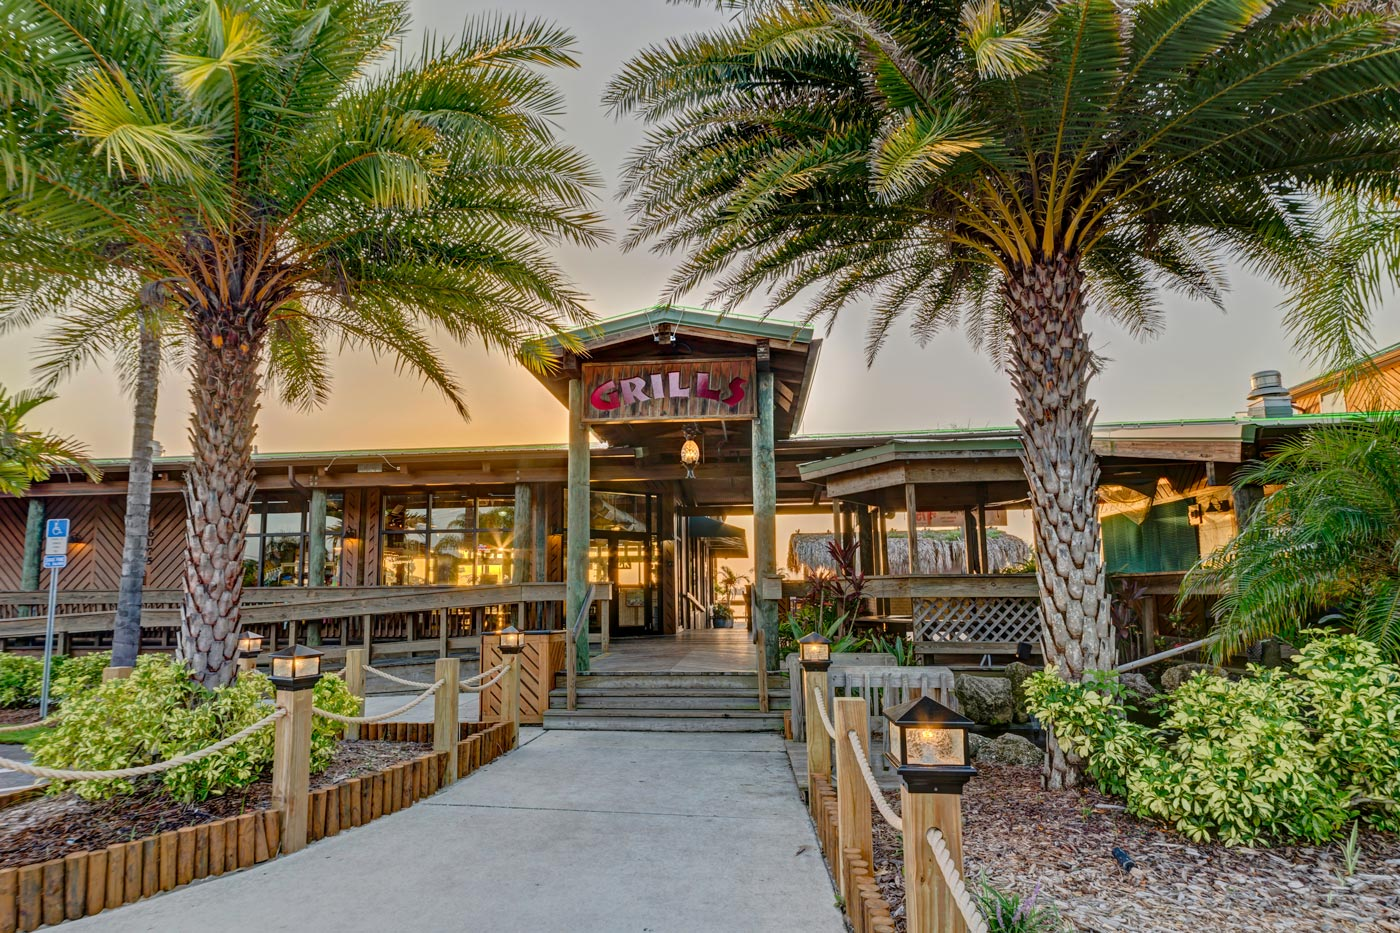 Grills Seafood Waterfront Restaurant Orlando Port Canaveral Melbourne